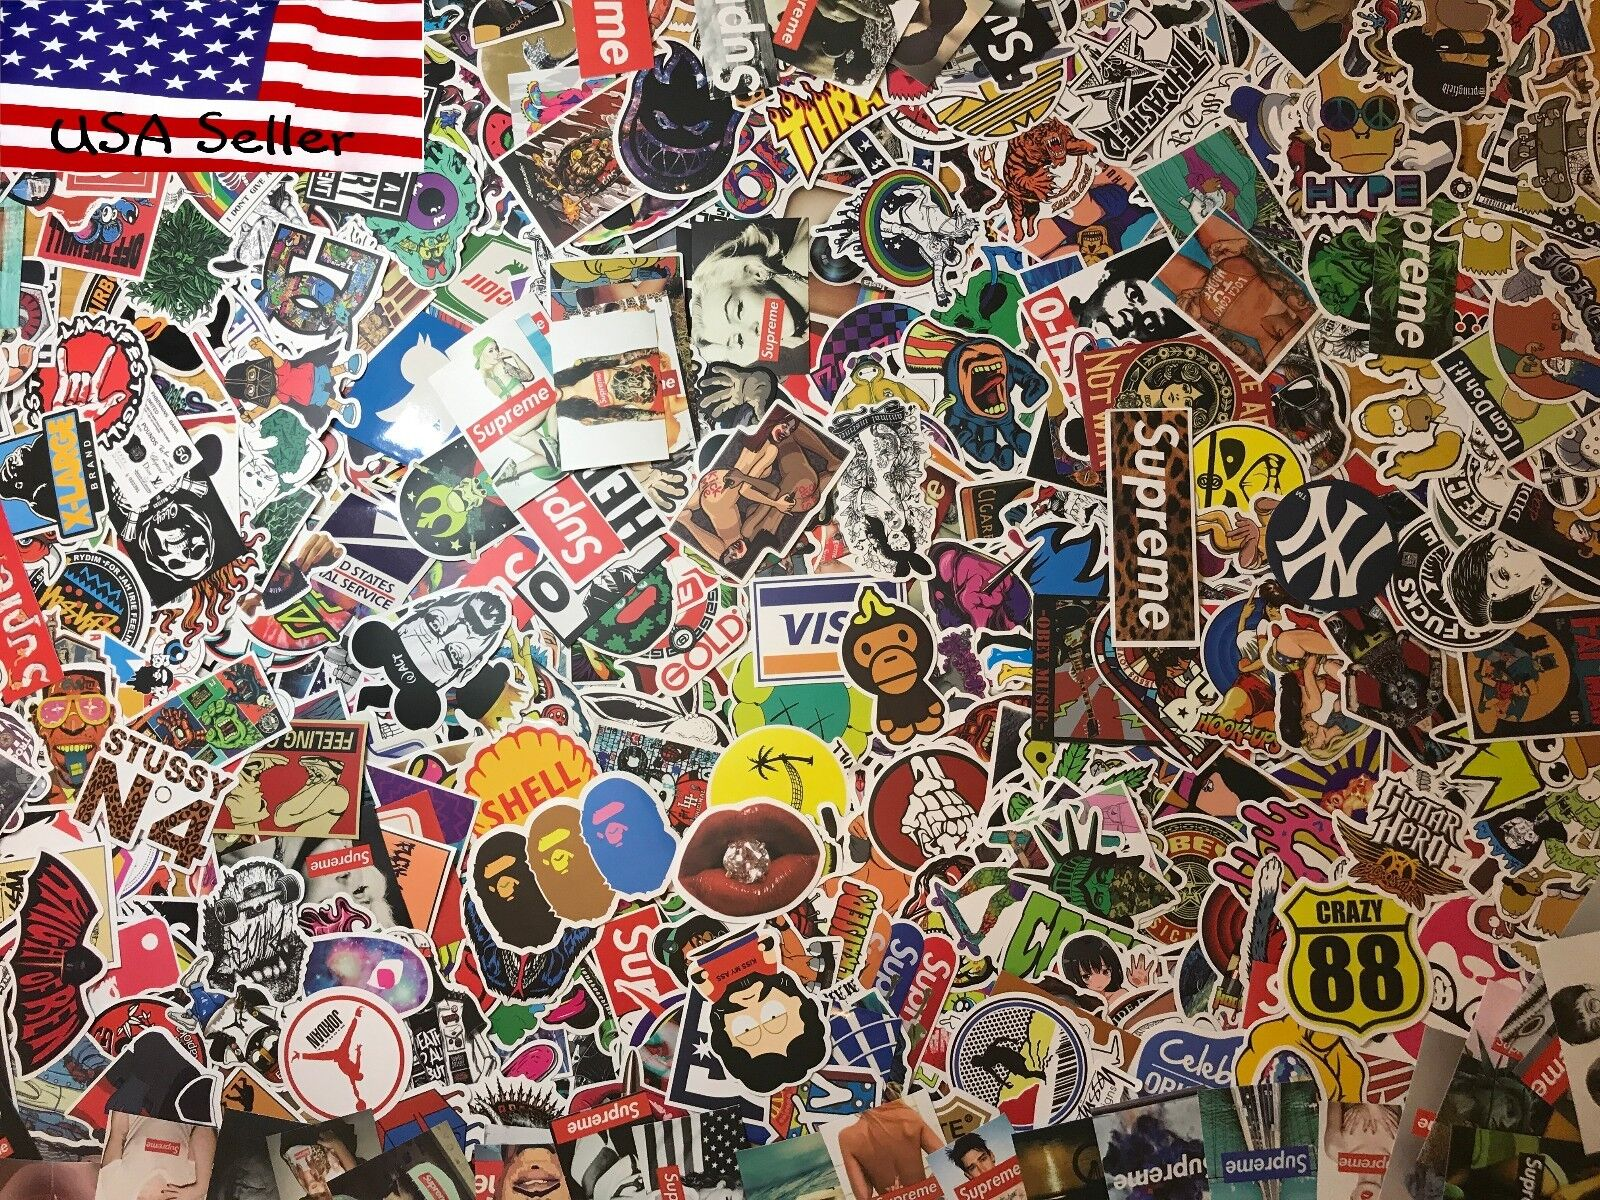 100 skateboard stickers bomb vinyl laptop luggage decals dope sticker lot cool stickers decals